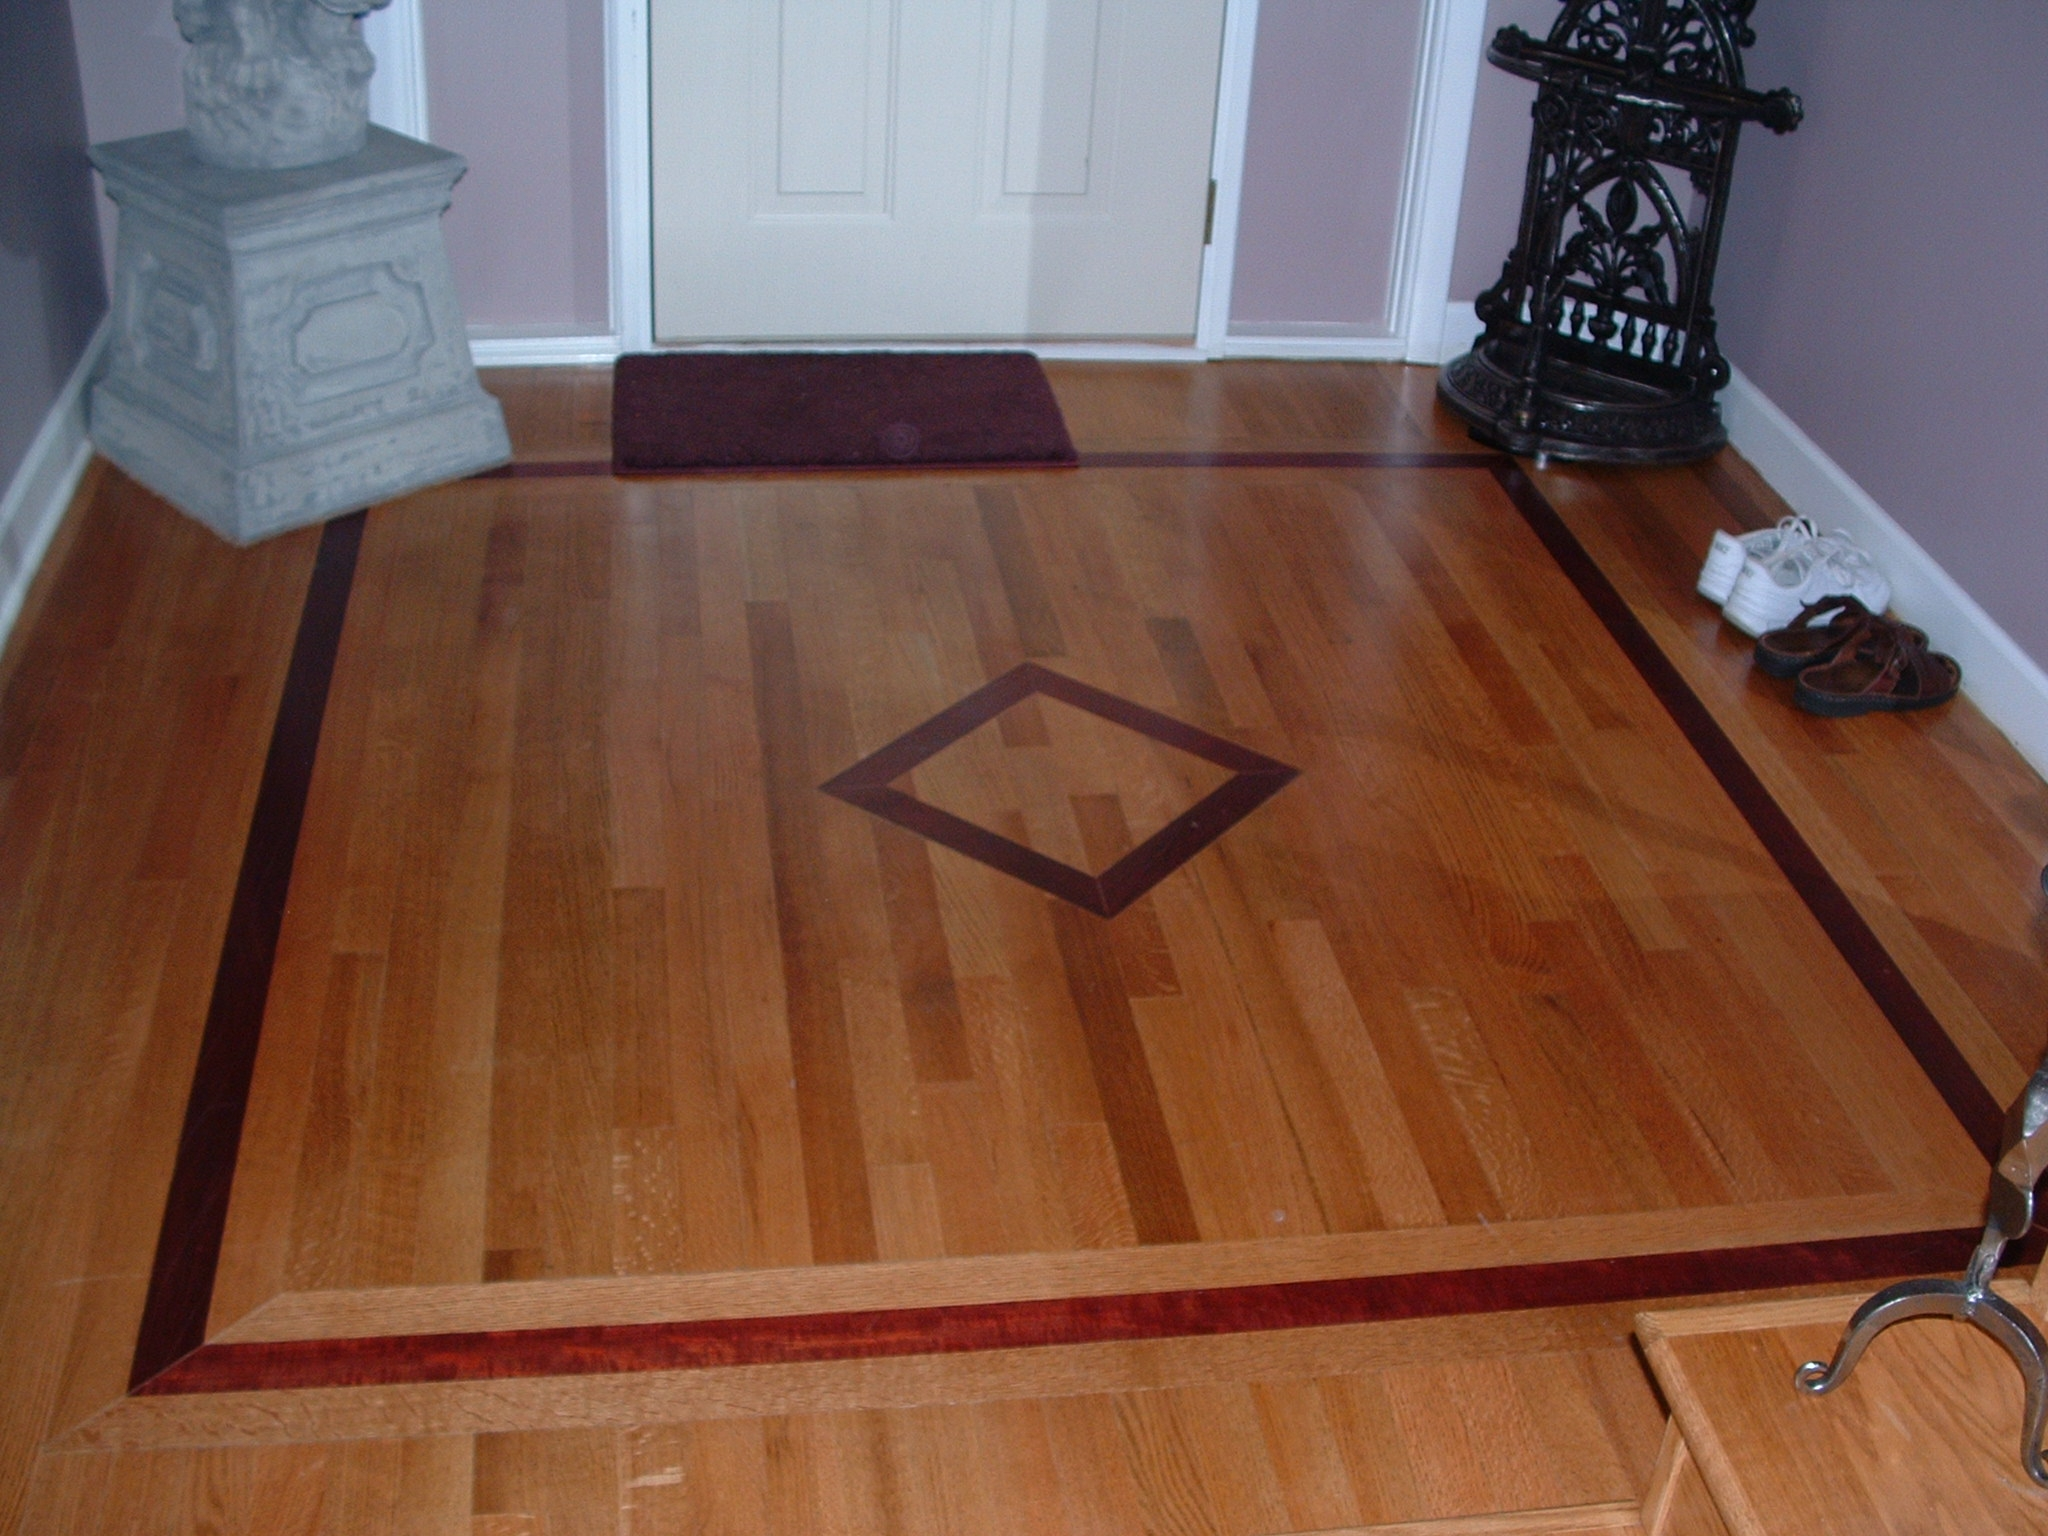 Laying Wood Floors Over Ceramic Tile